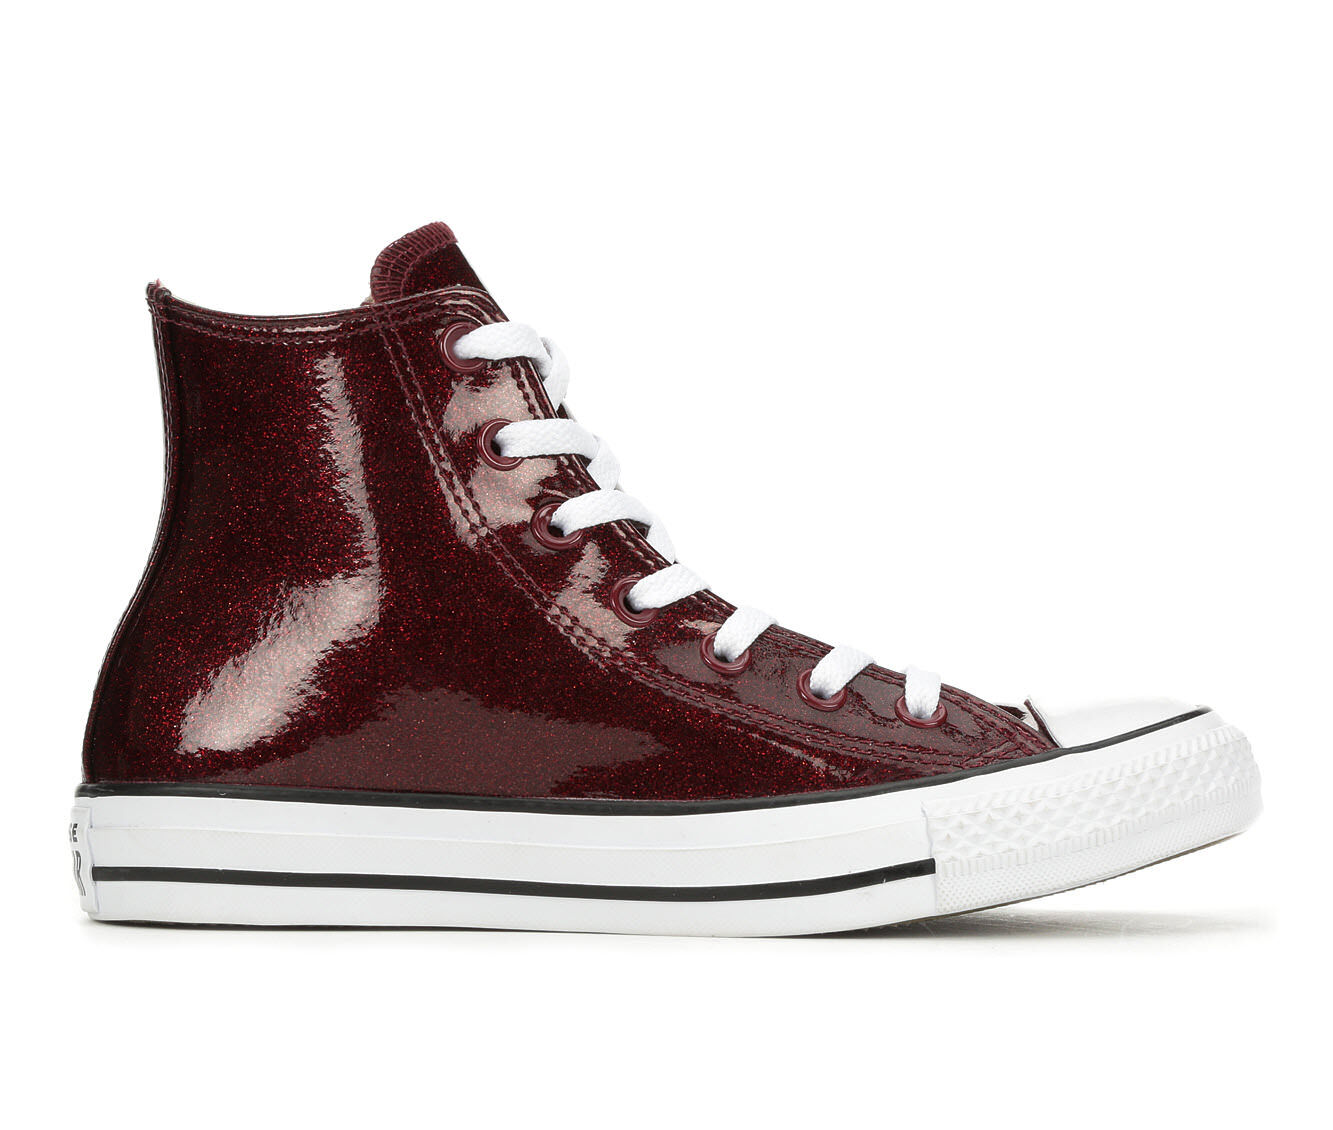 Women's Converse After Party Hi Sneakers Burgundy/Wht/Bk